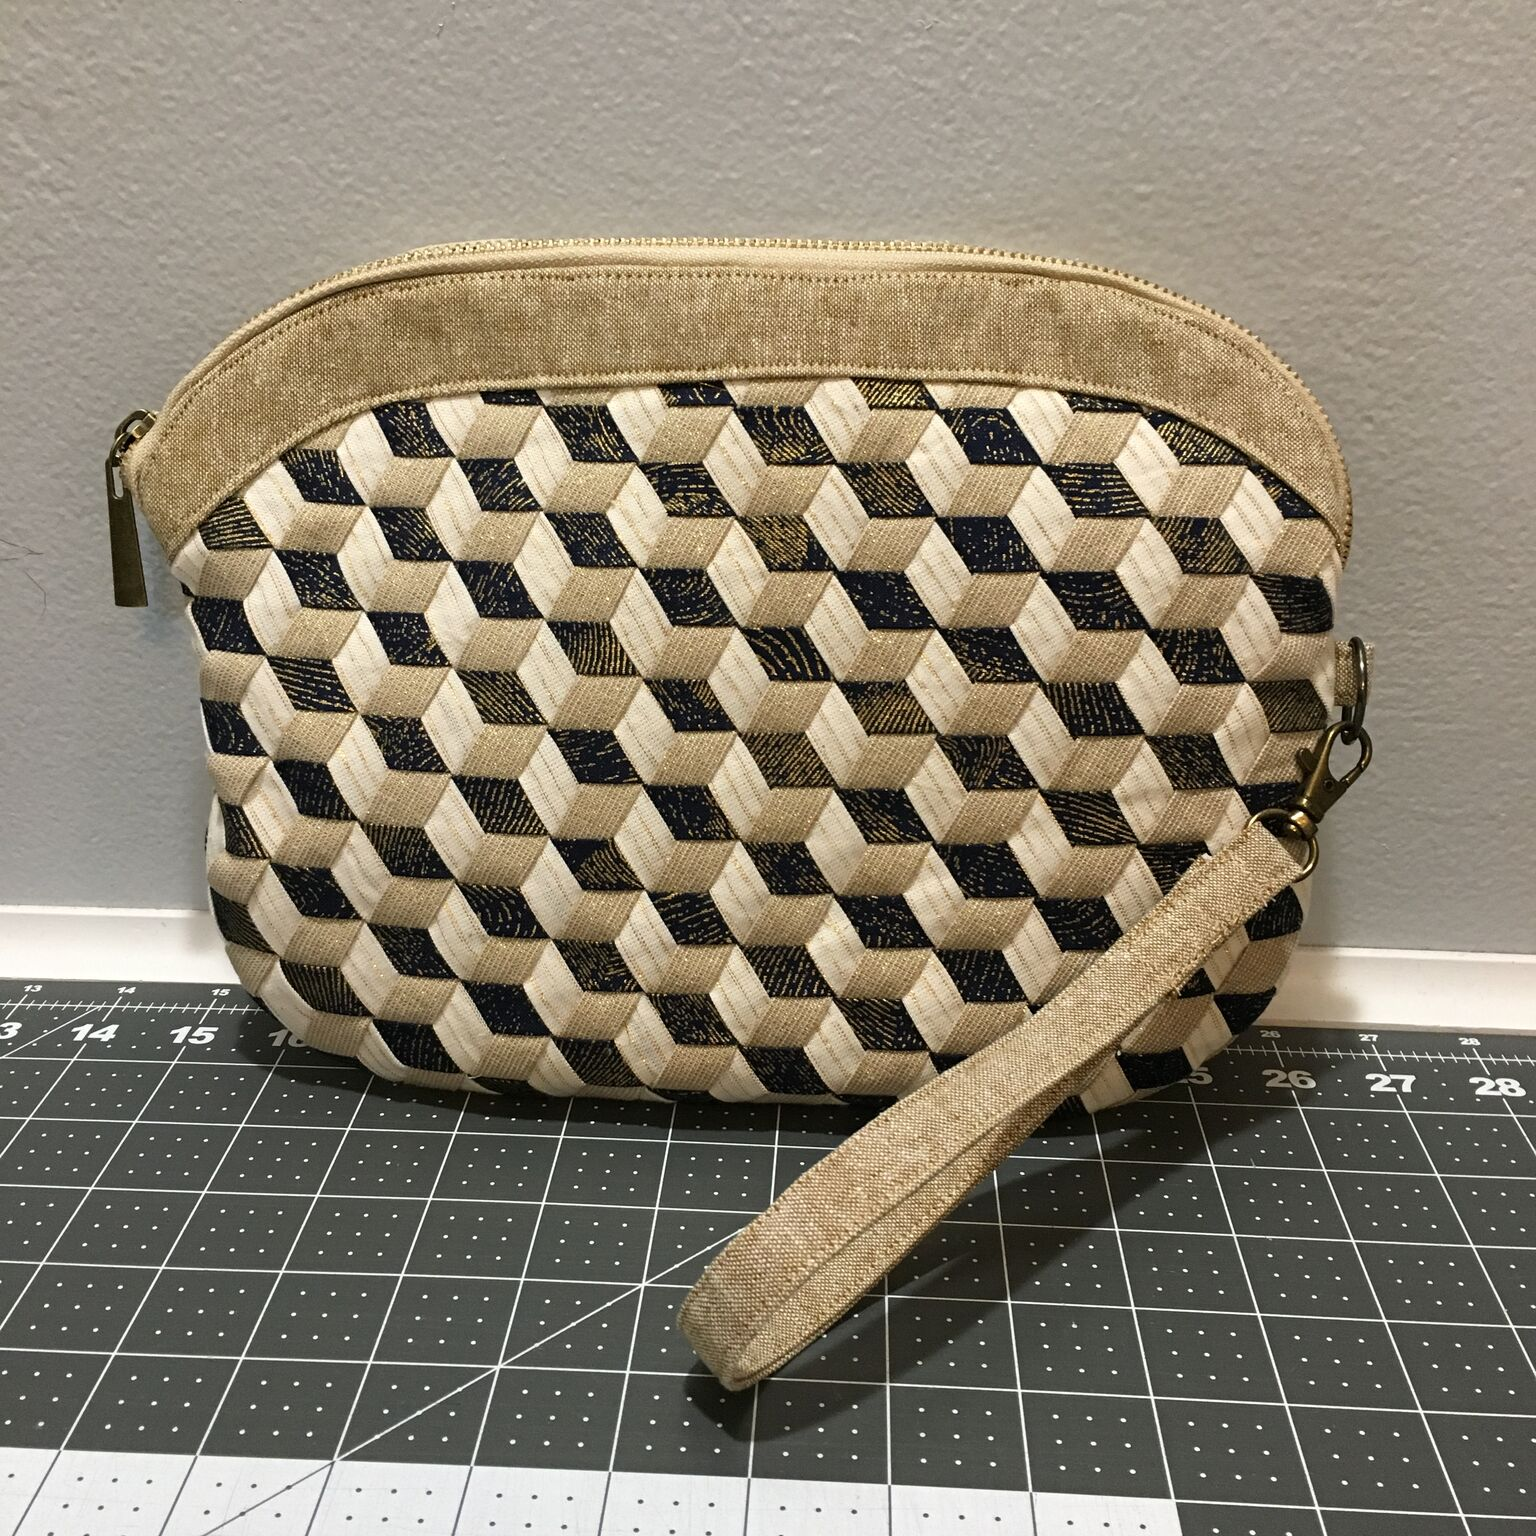 Kim Johnson wove the Tumbling Blocks design using half inch strips, then turned it into this clutch!